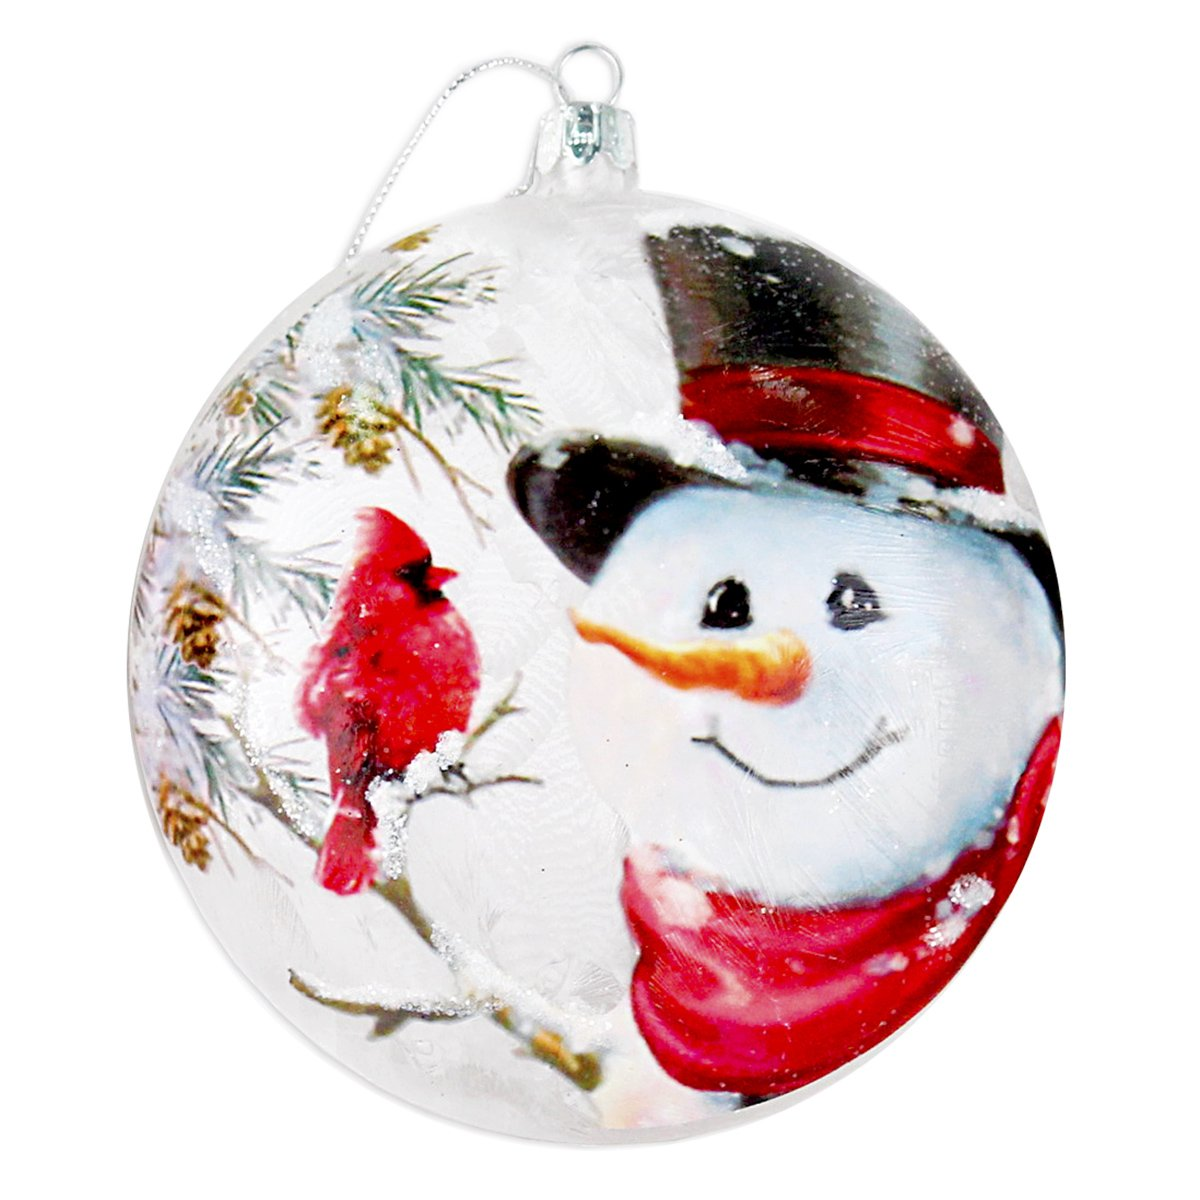 Stony Creek 4'' Round Glass Holiday Ornament Winter Jolly Snowman DSC7248-B